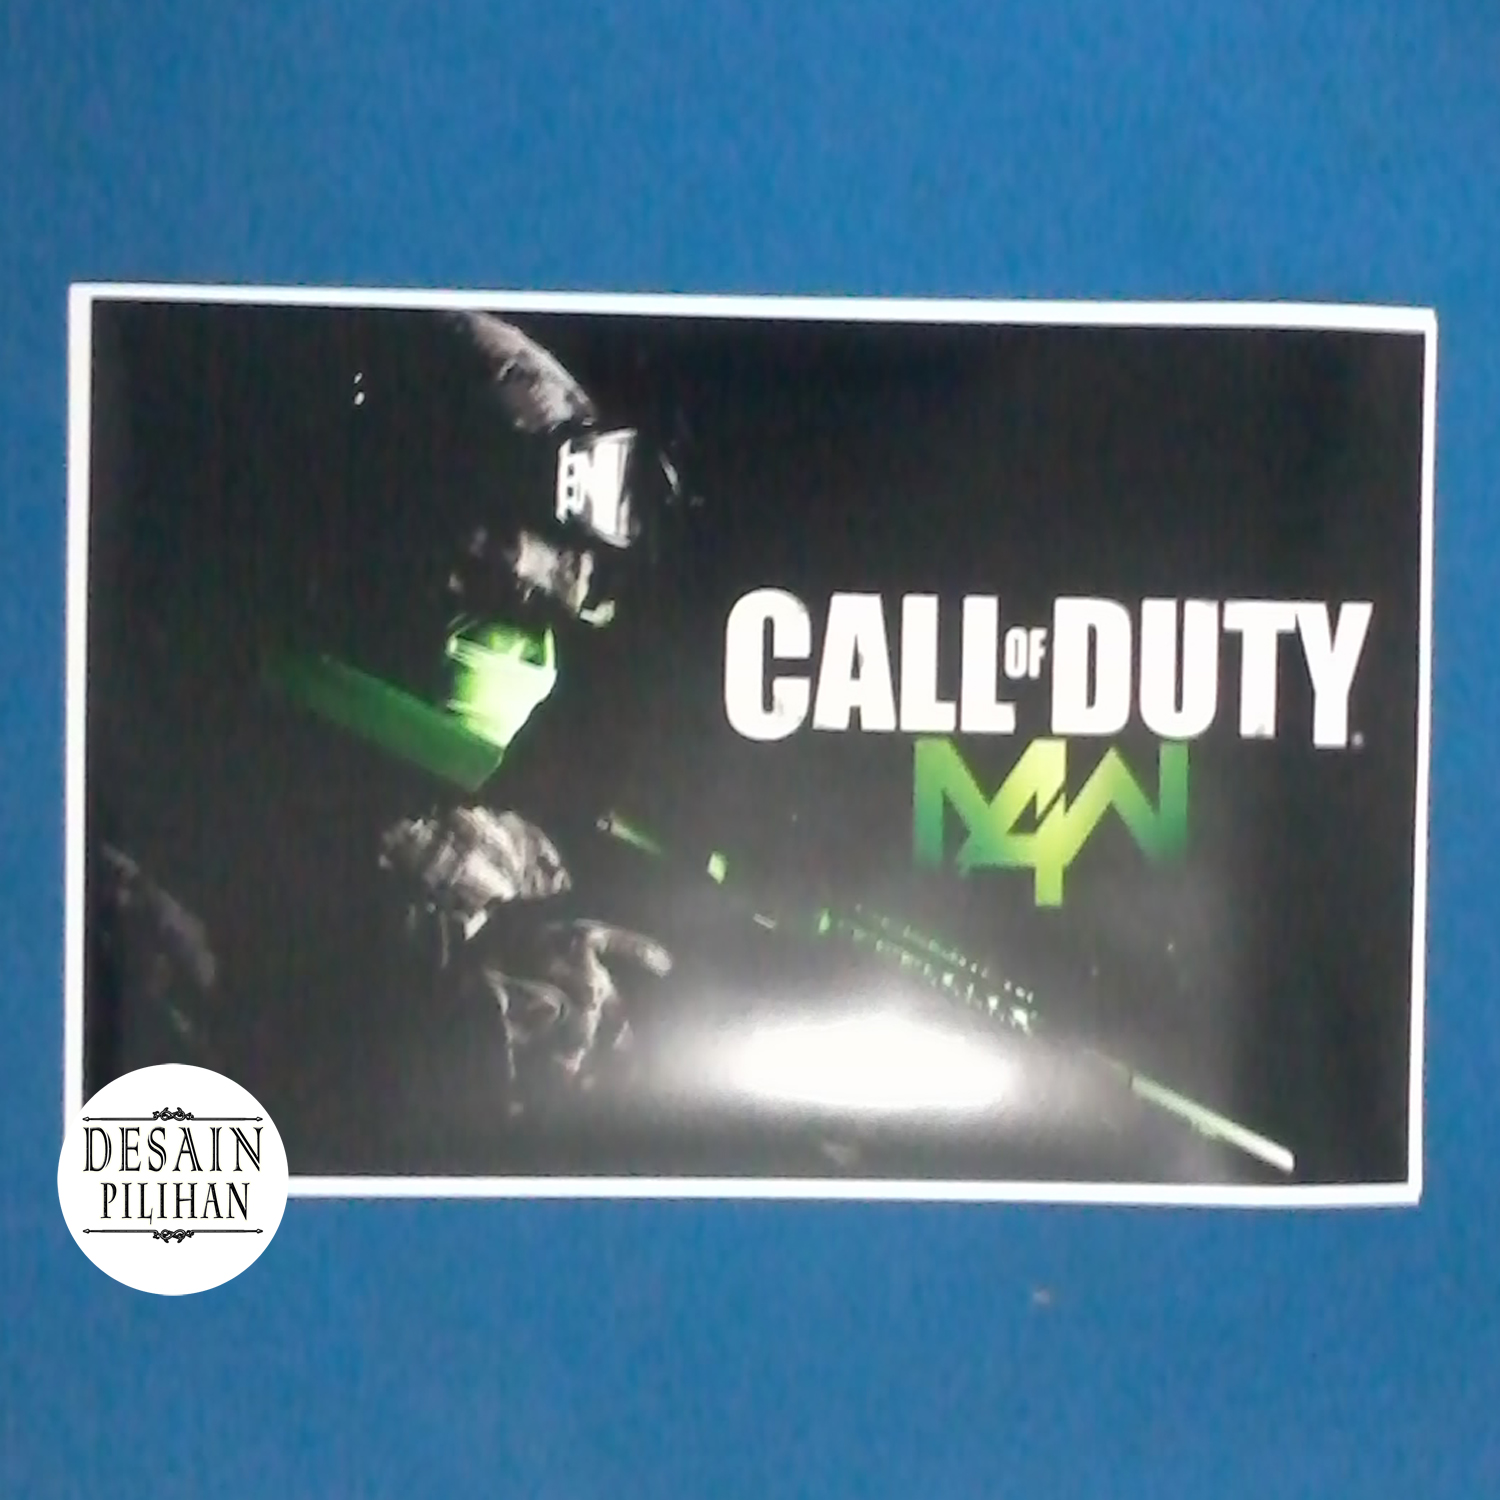 POSTER CALL DUTY